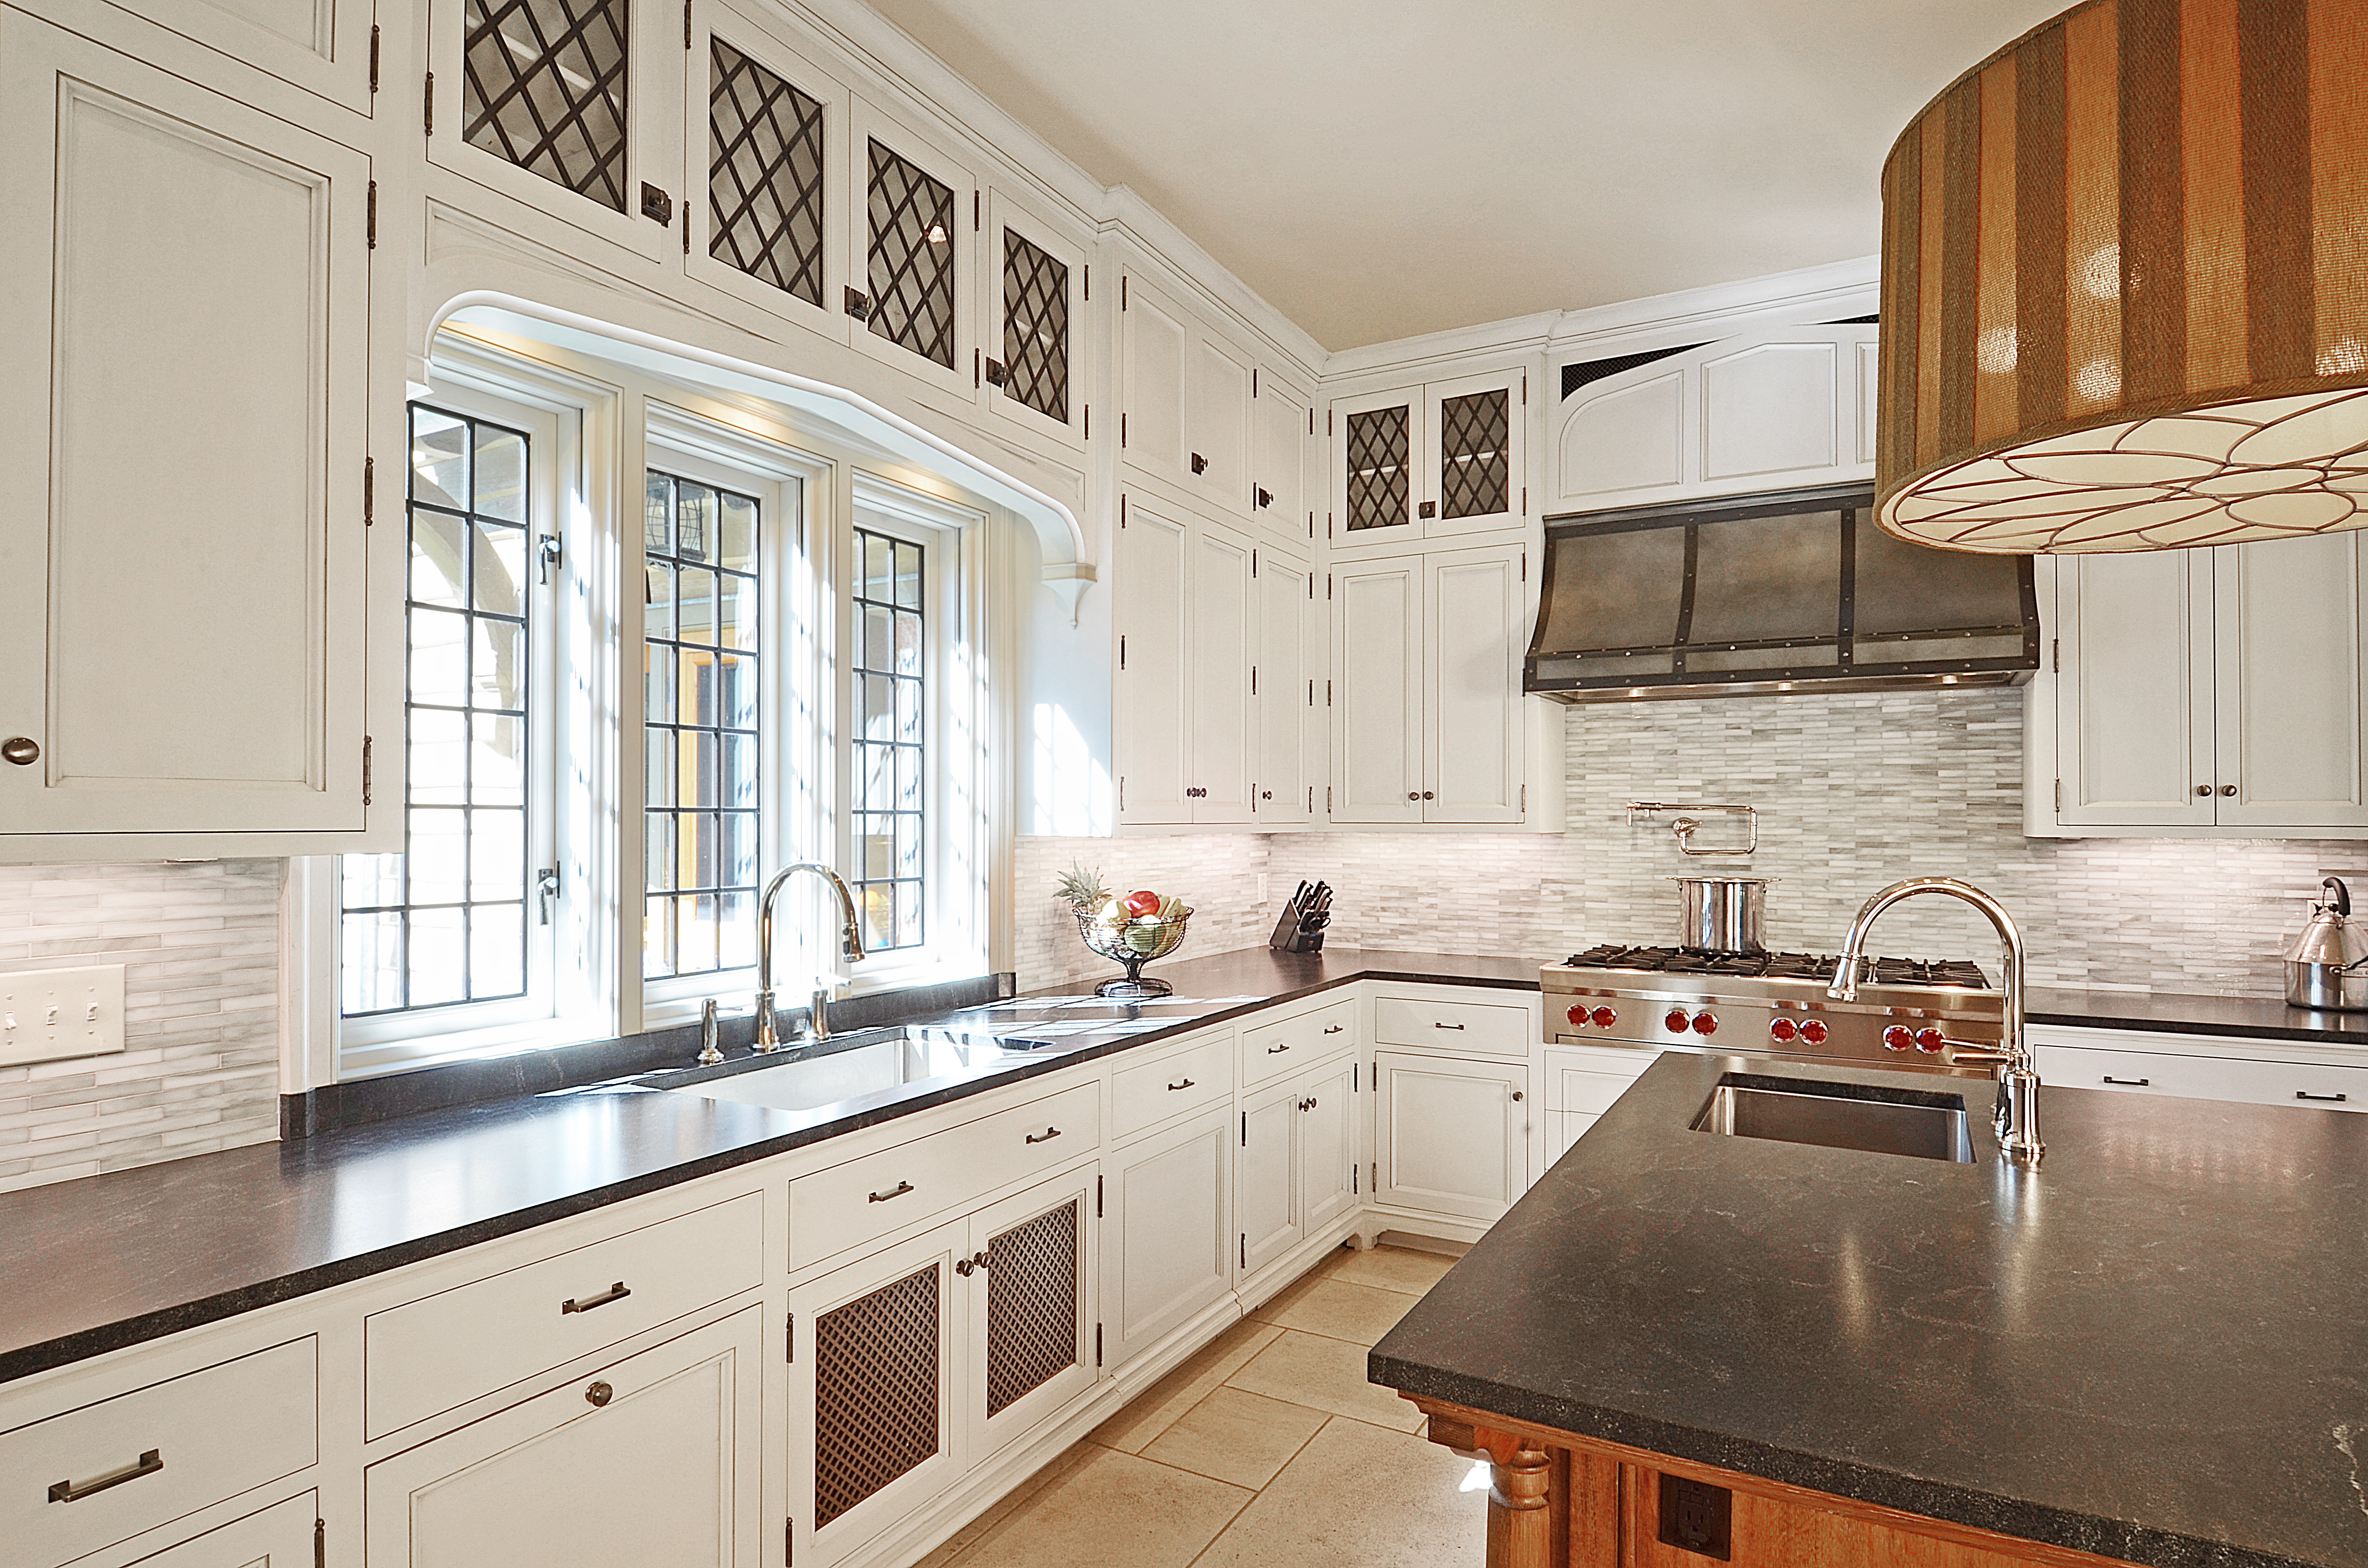 Kitchen in a new english tudor residence architect for English style kitchen cabinets